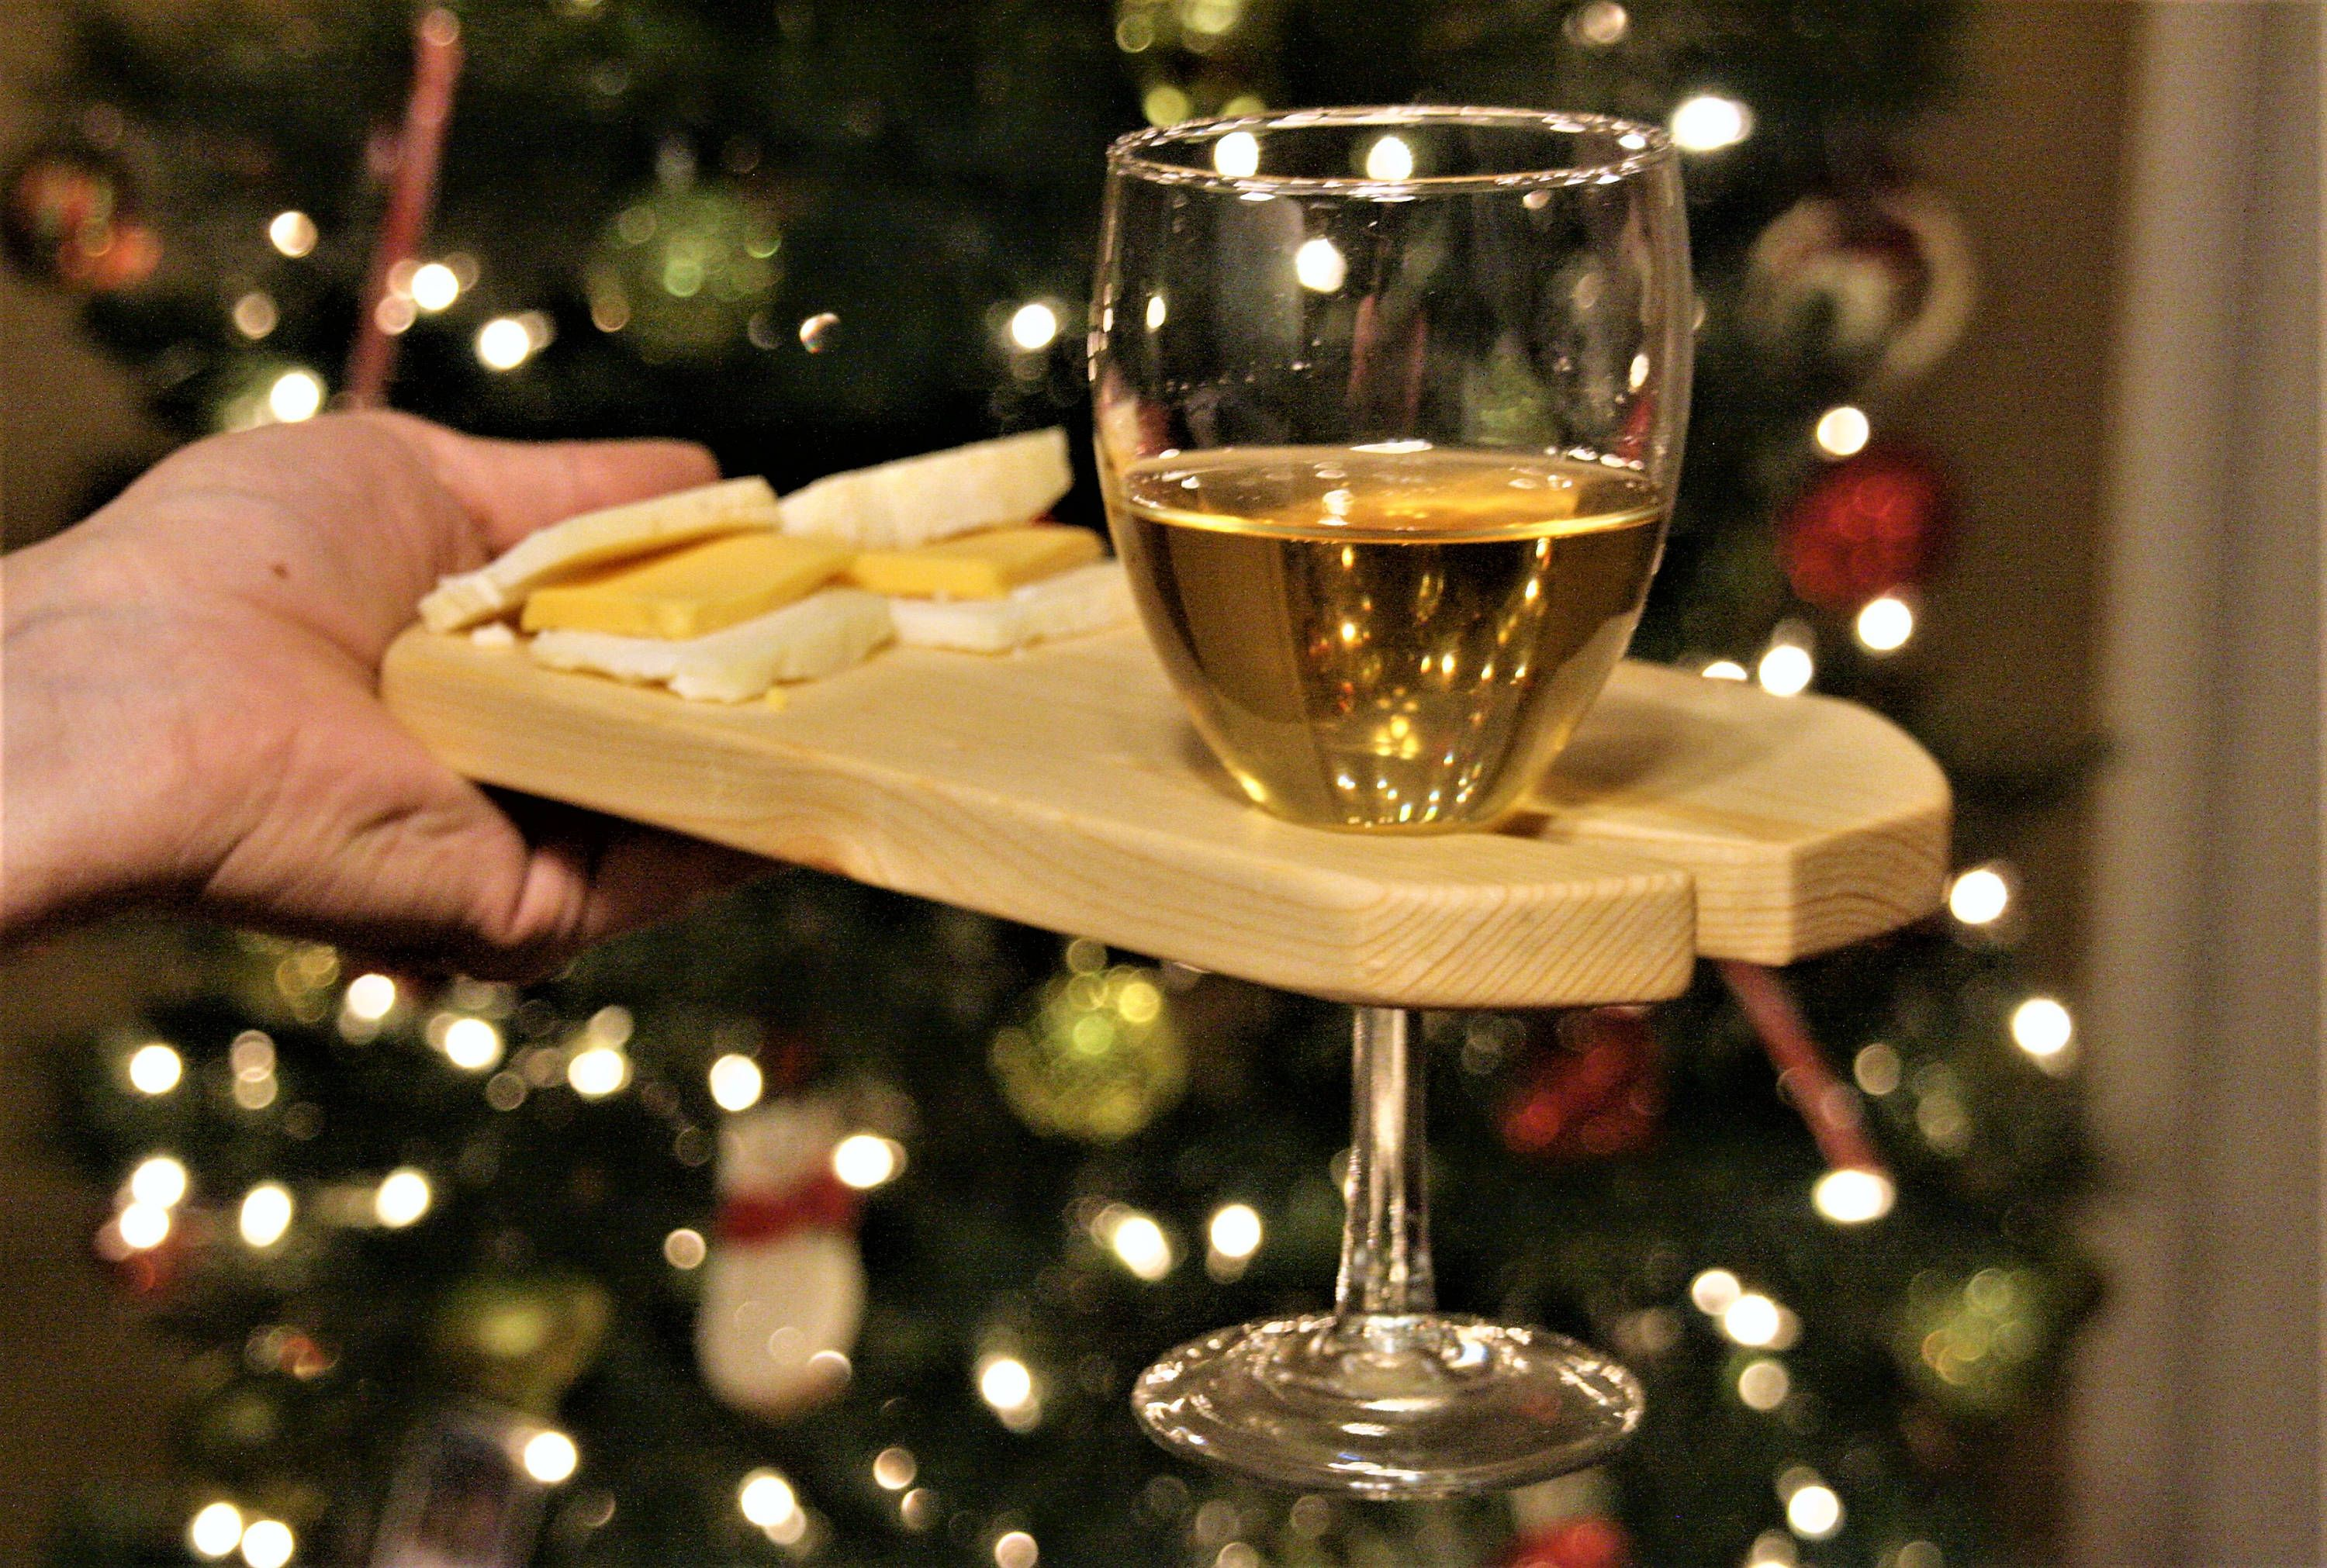 Set Of Wine And Cheese Boards Wood Cheese Board Set With Wine Glass